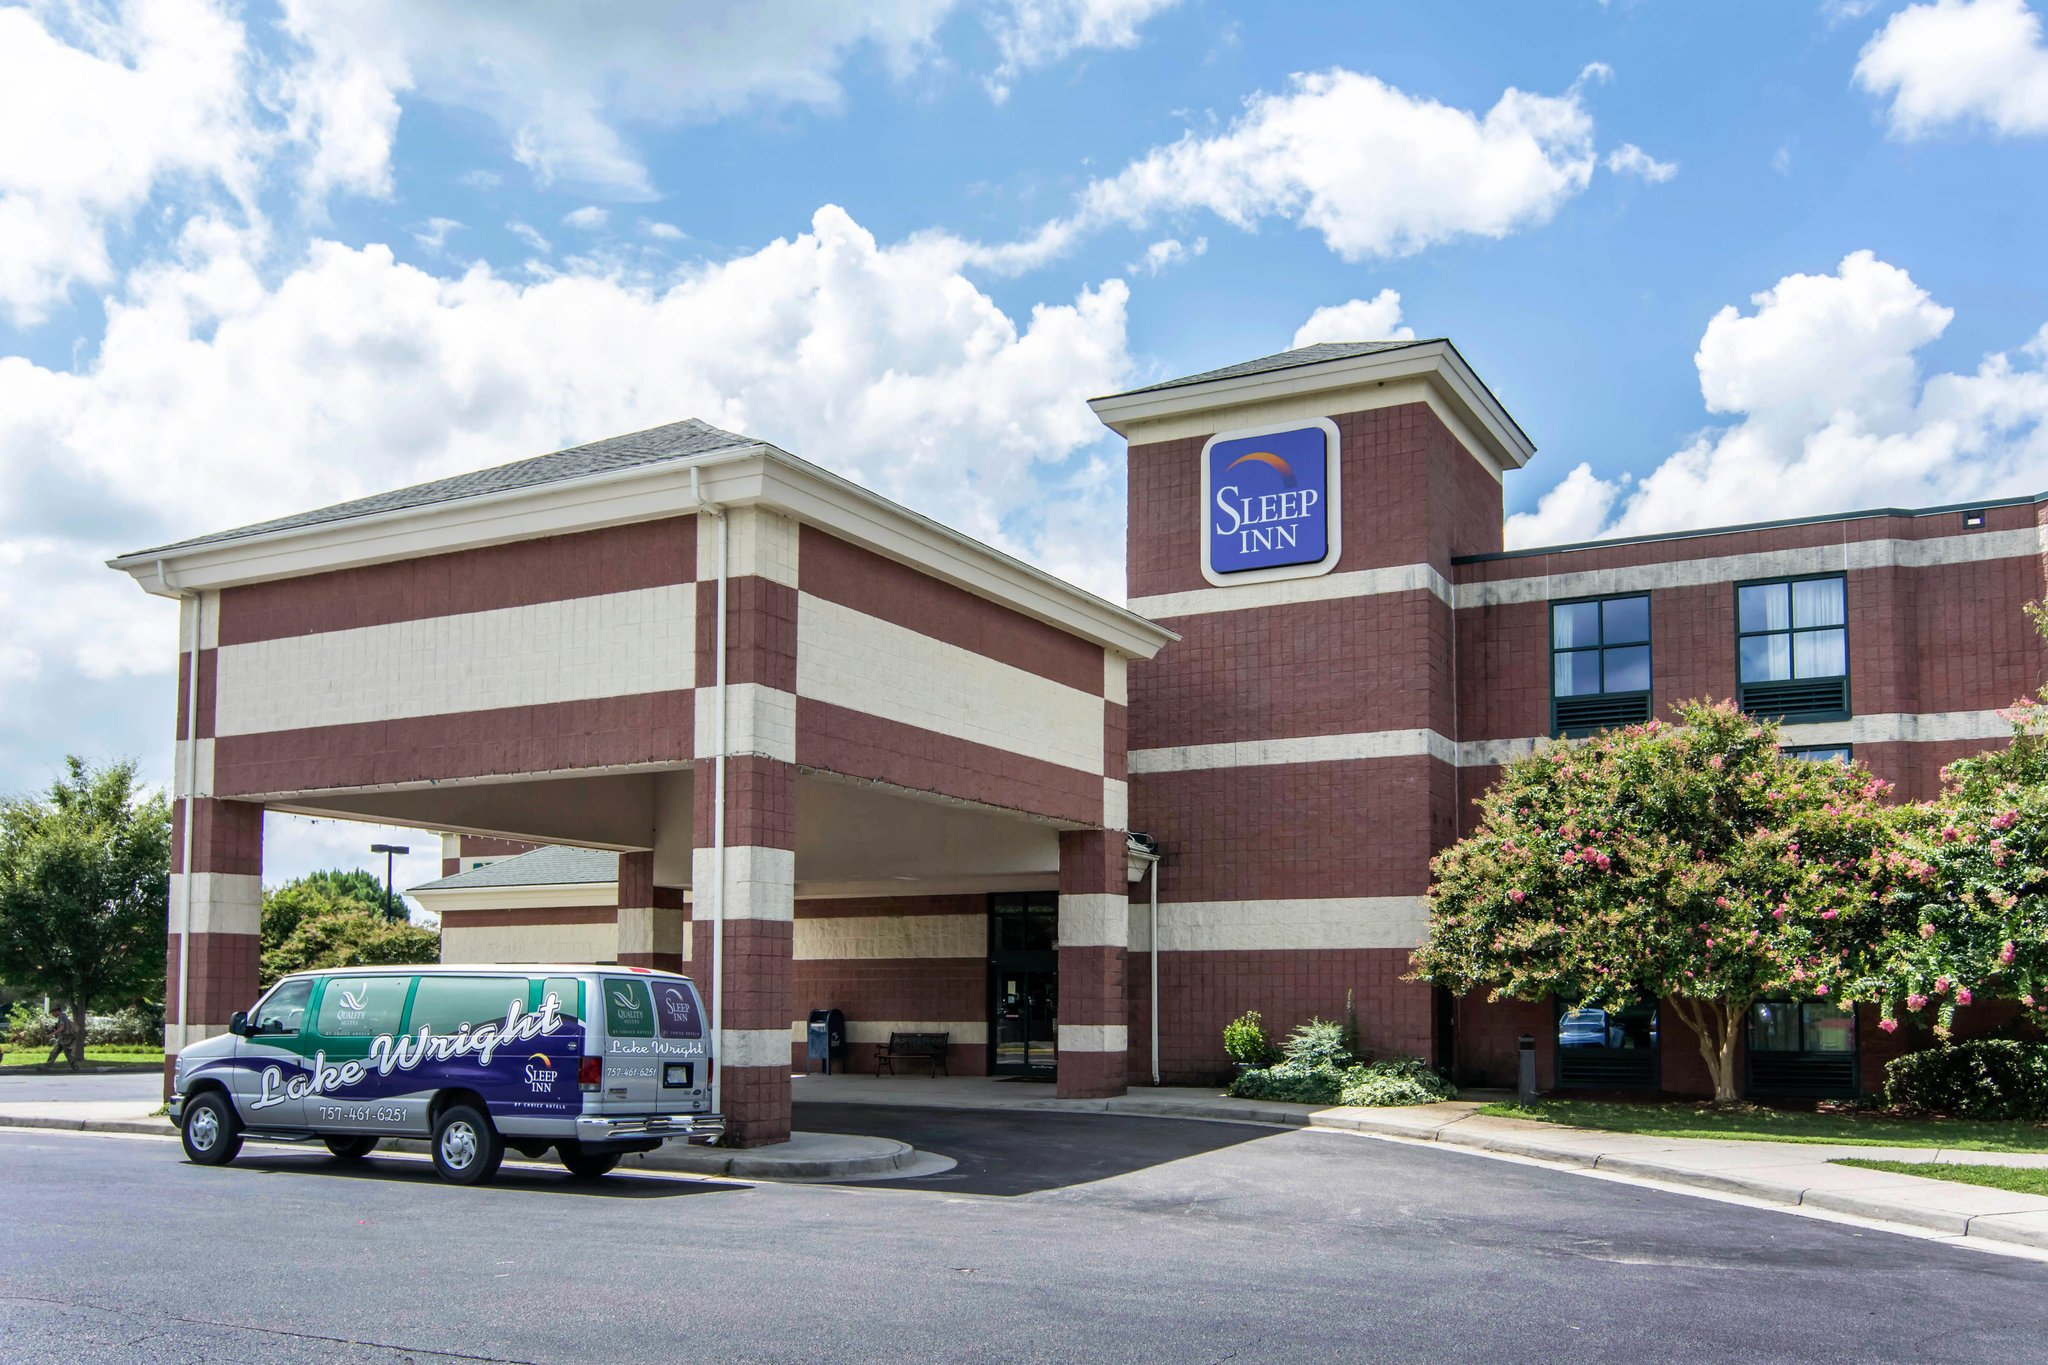 Sleep Inn Lake Wright - Norfolk Airport